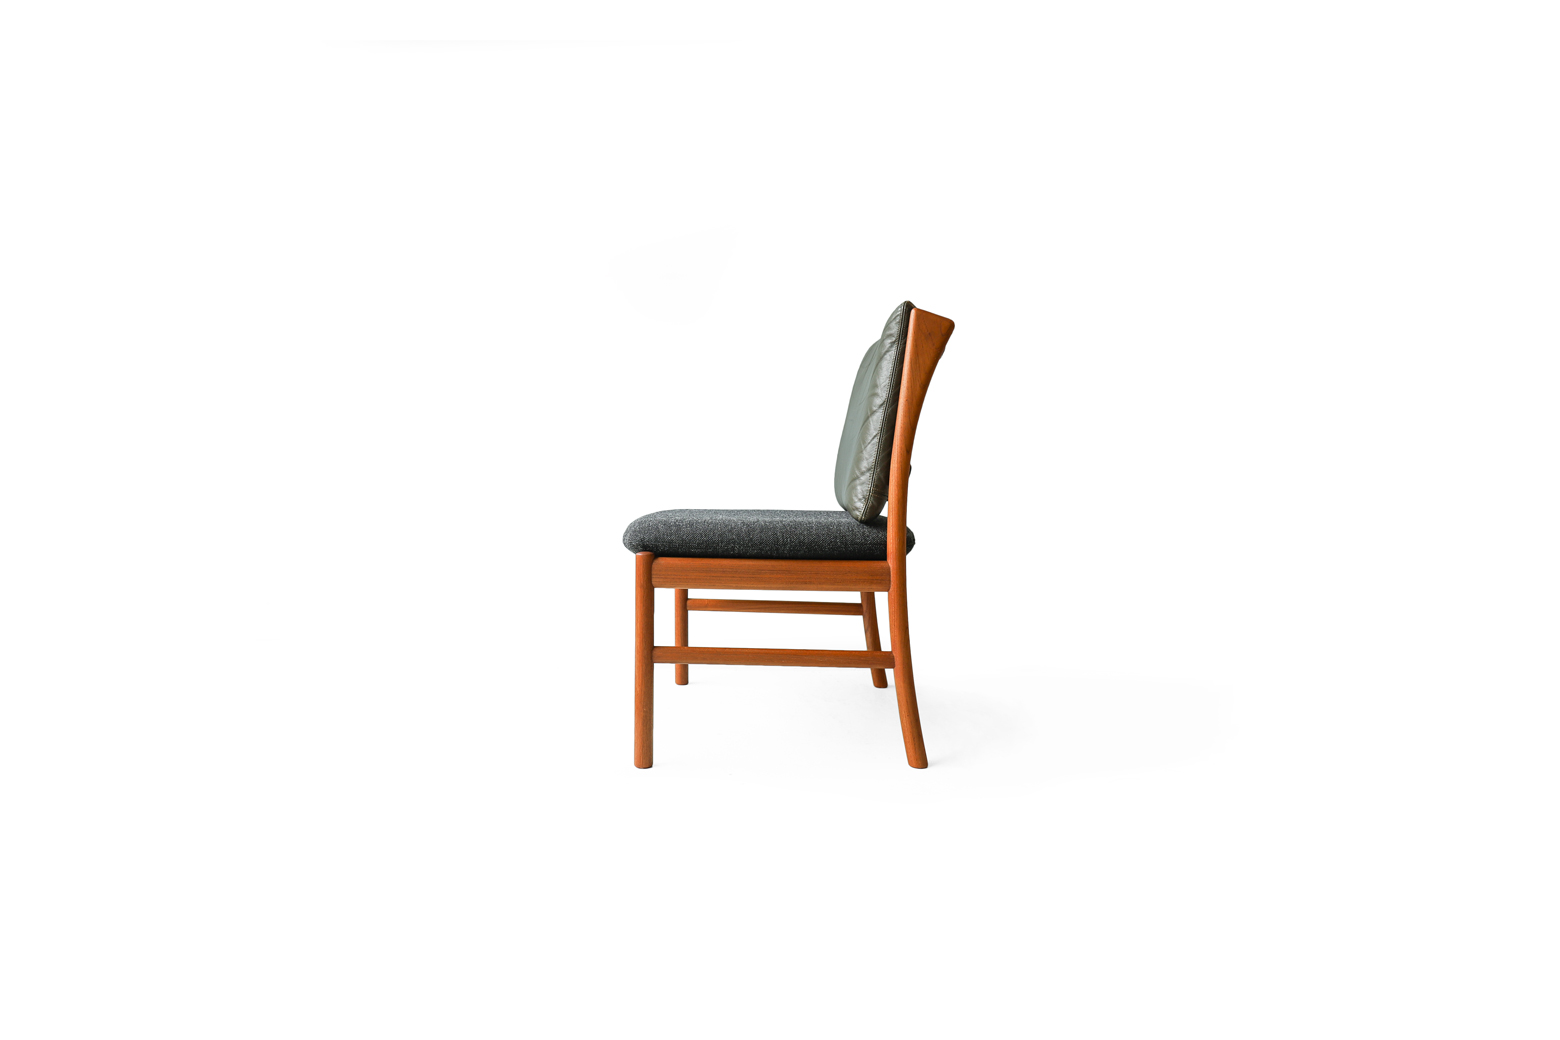 Japanese Vintage HITA CRAFTS Dining Chair /日田工芸 ダイニングチェア ジャパンヴィンテージ チーク材 北欧